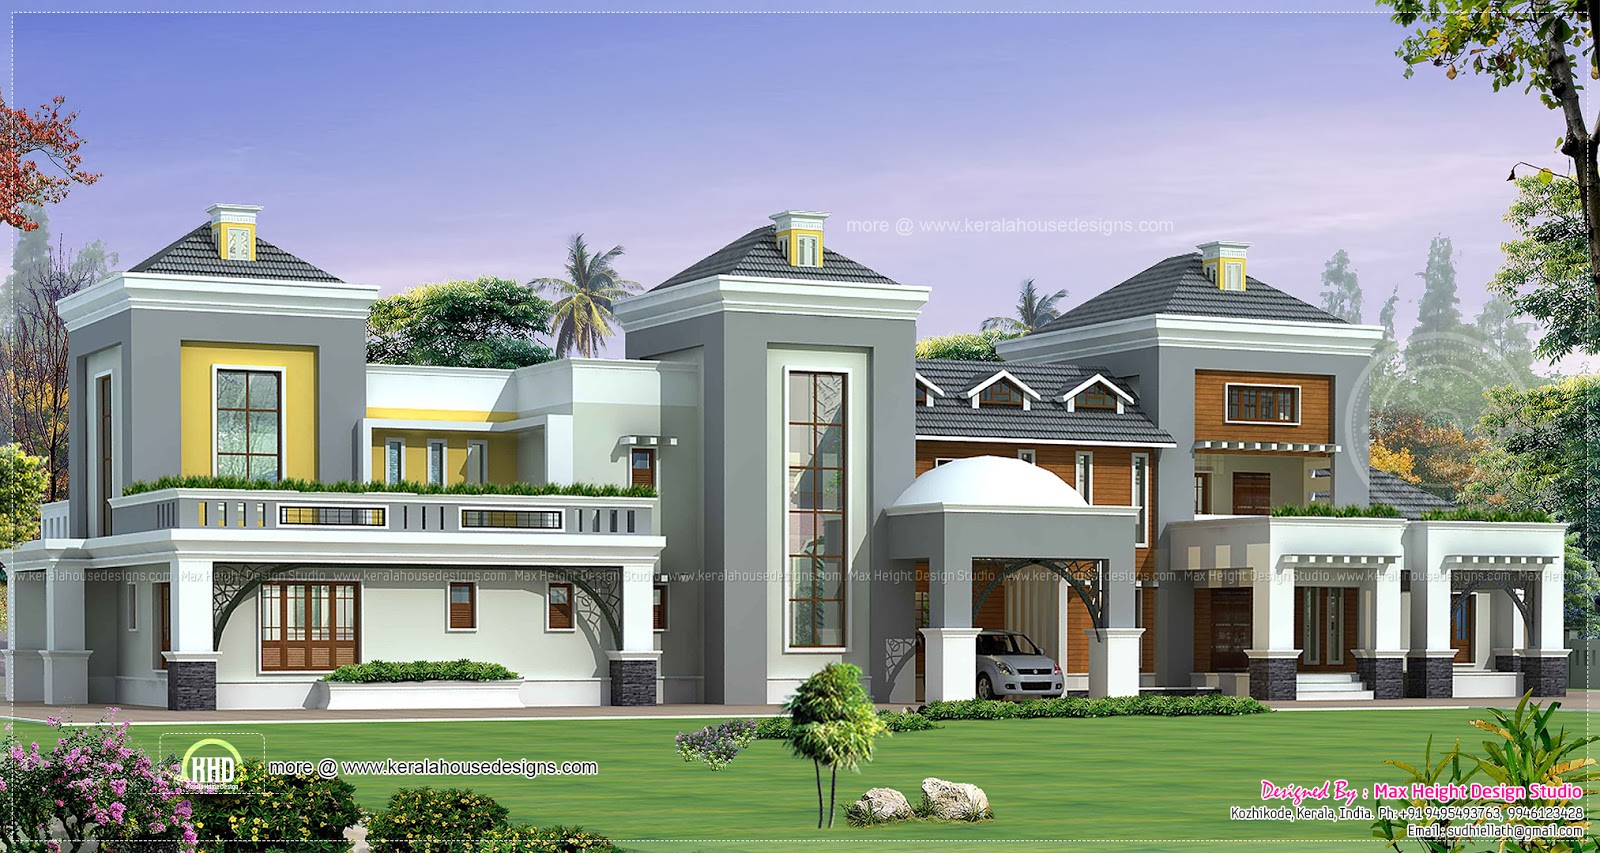 Luxury house plan with photo kerala home design and for Luxury home designs and floor plans